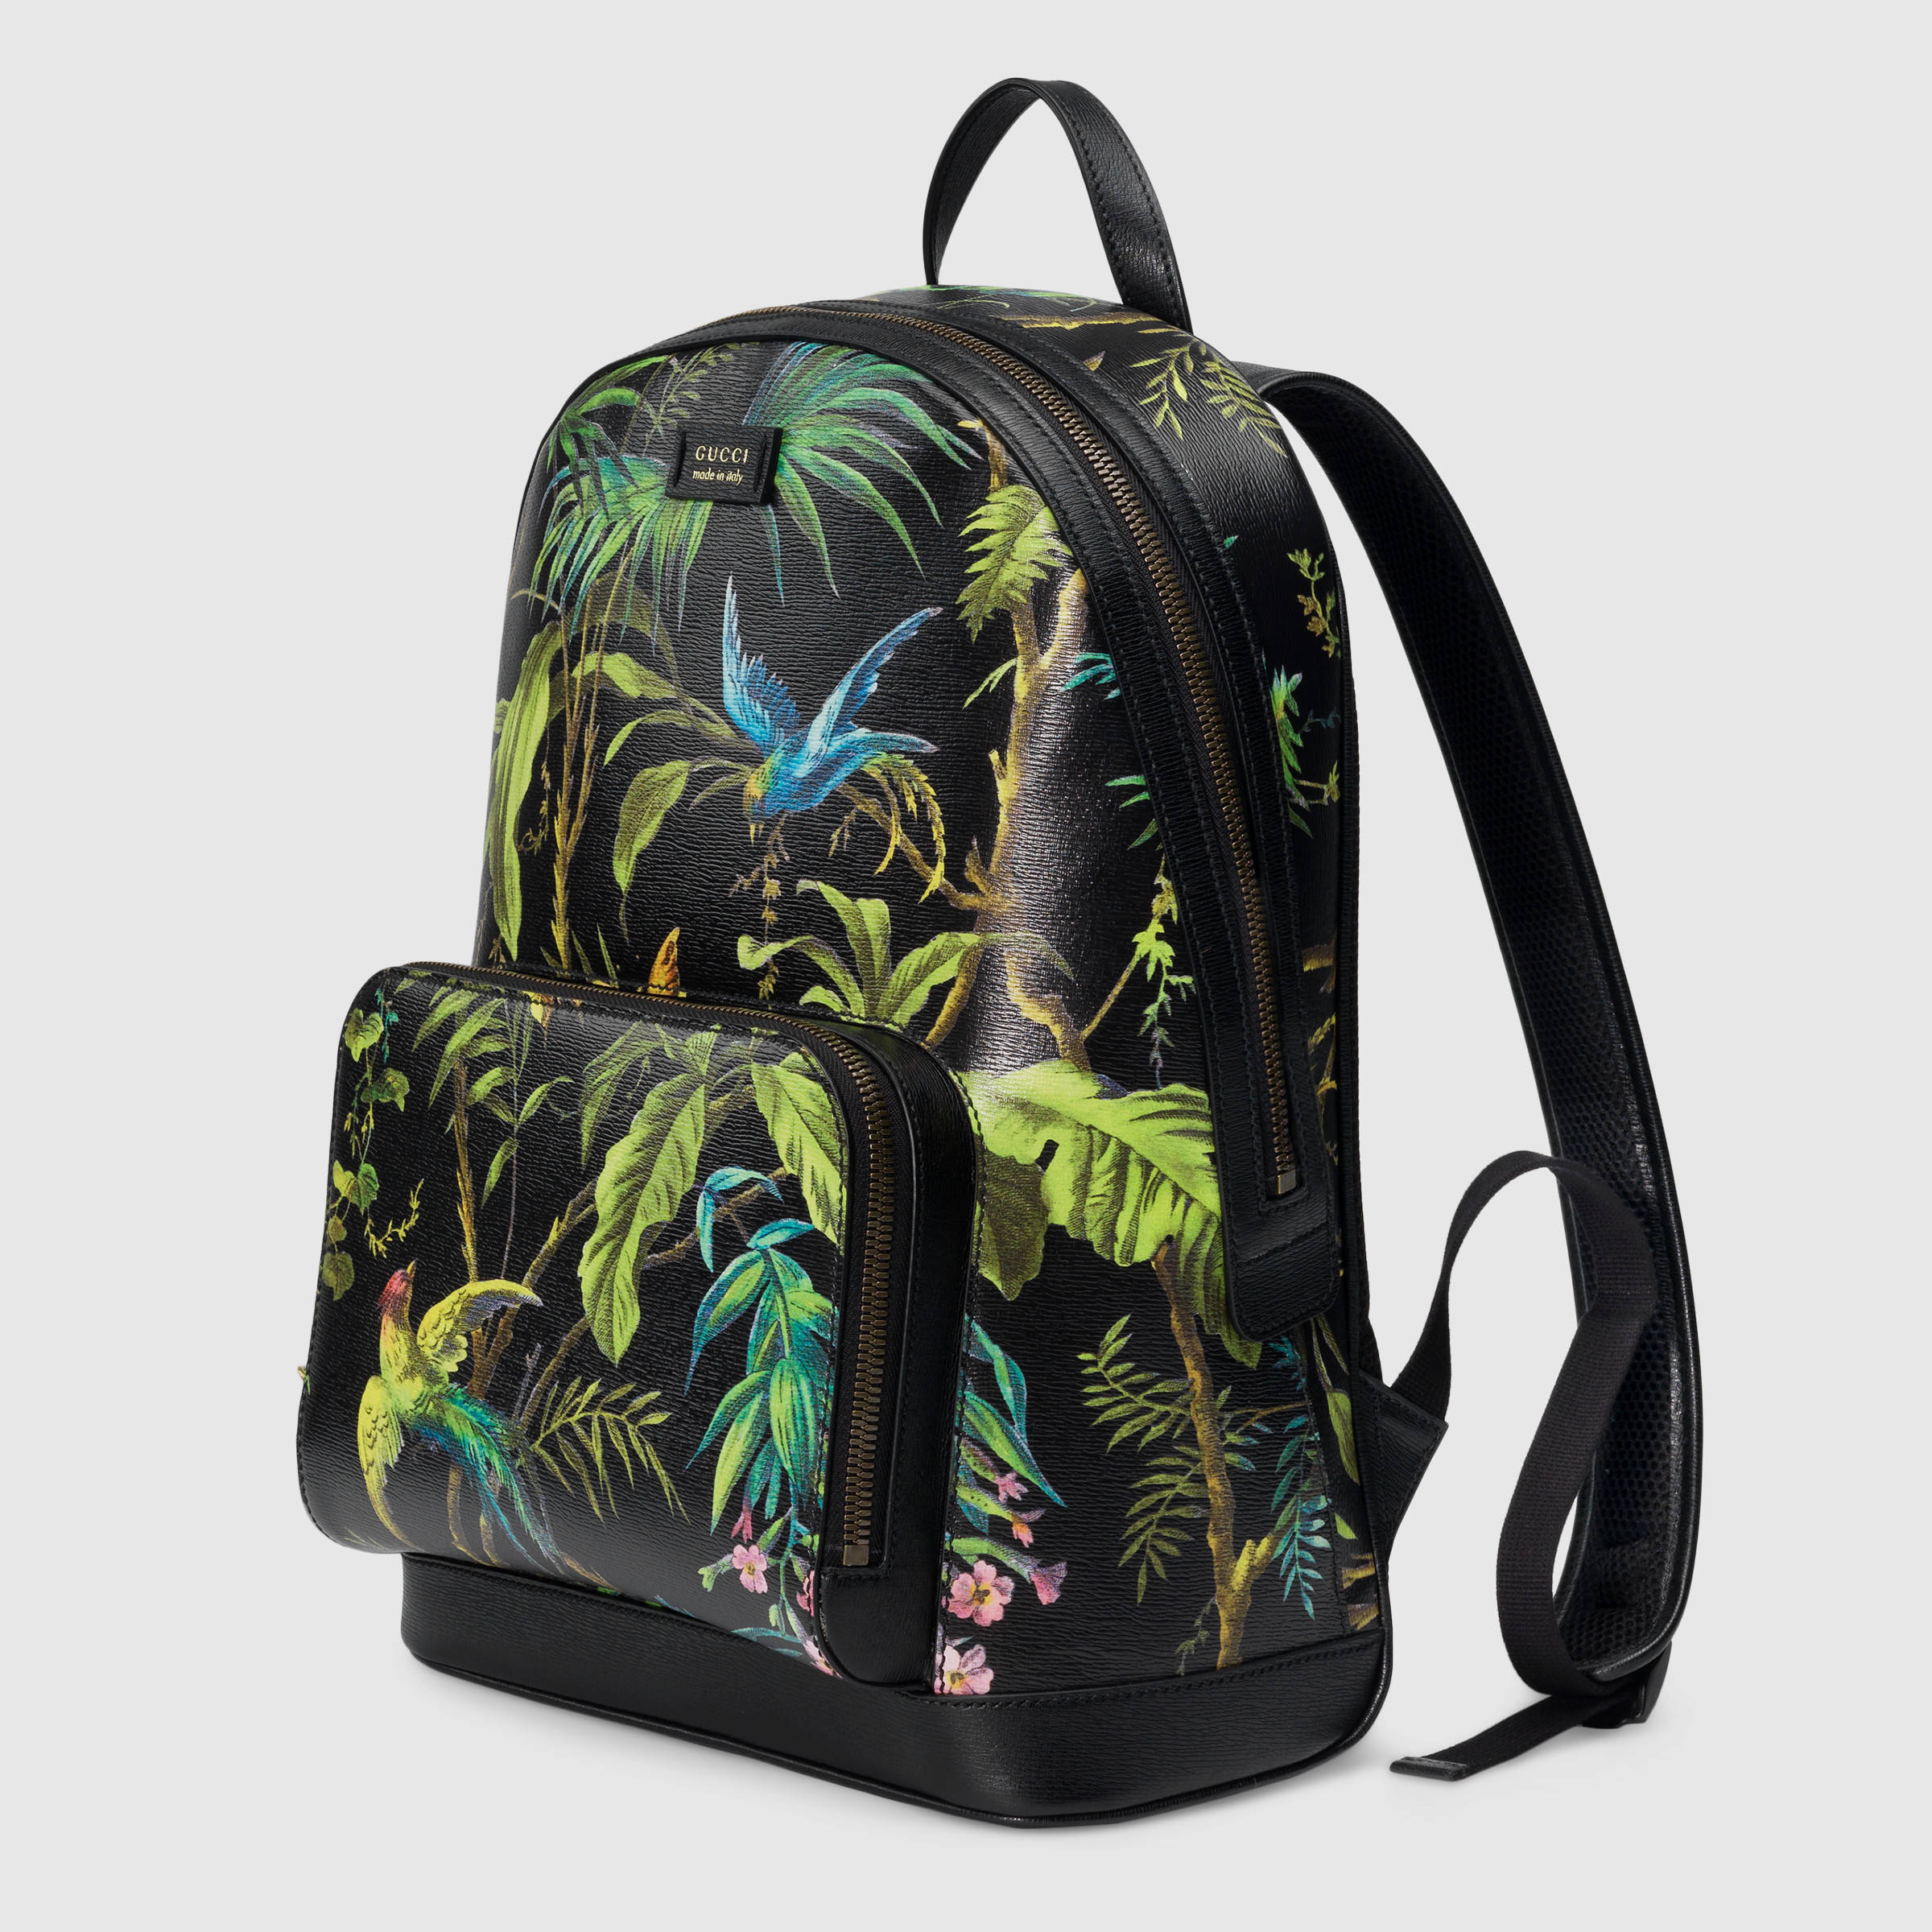 406370_DLP2T_3161_002_068_0000_Light-Tropical-print-leather-backpack